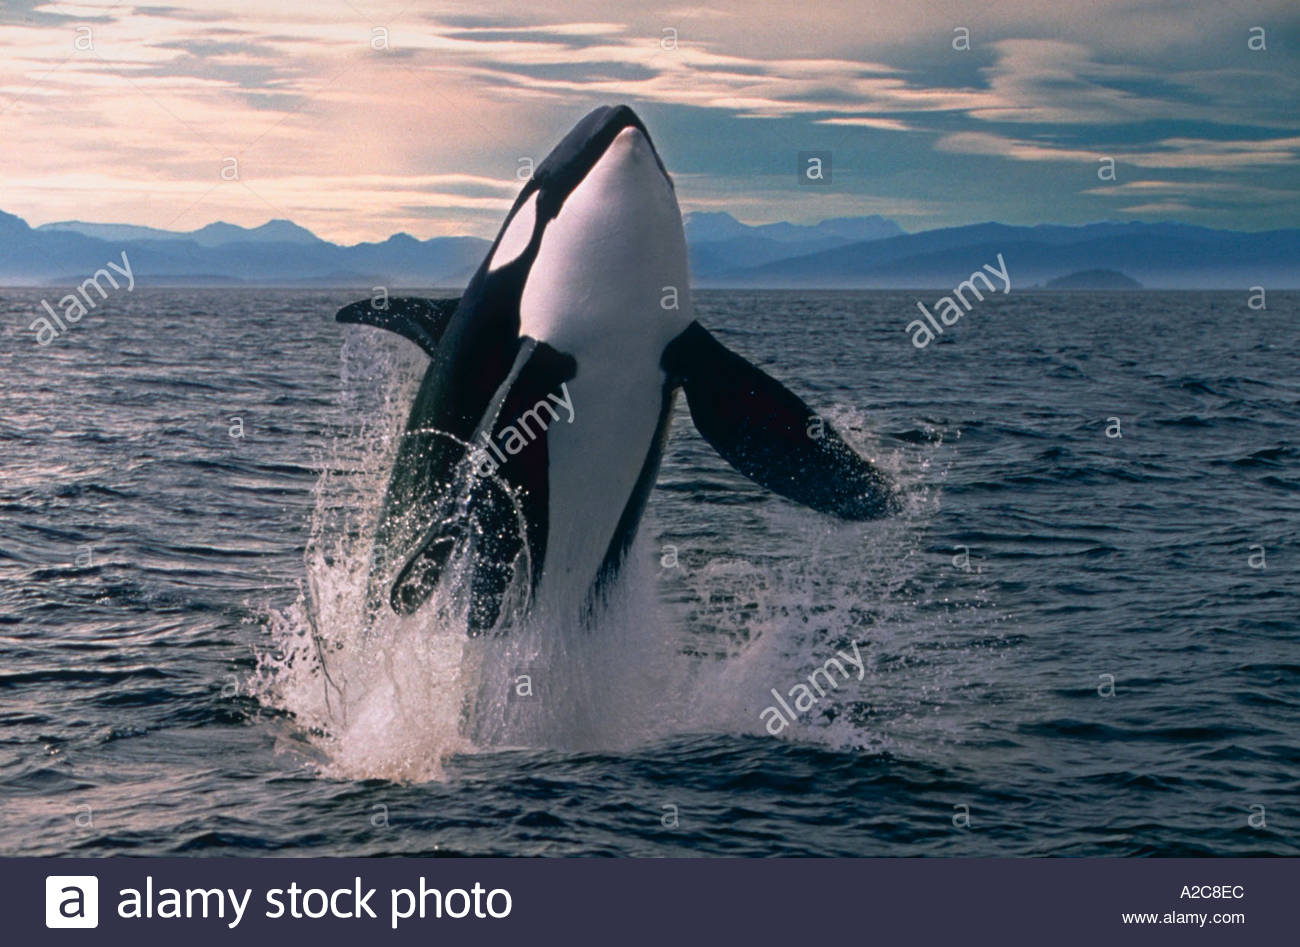 An Orca or Killer Whale orcinus orca creating a splash while breaching straight up out of the water - Stock Image